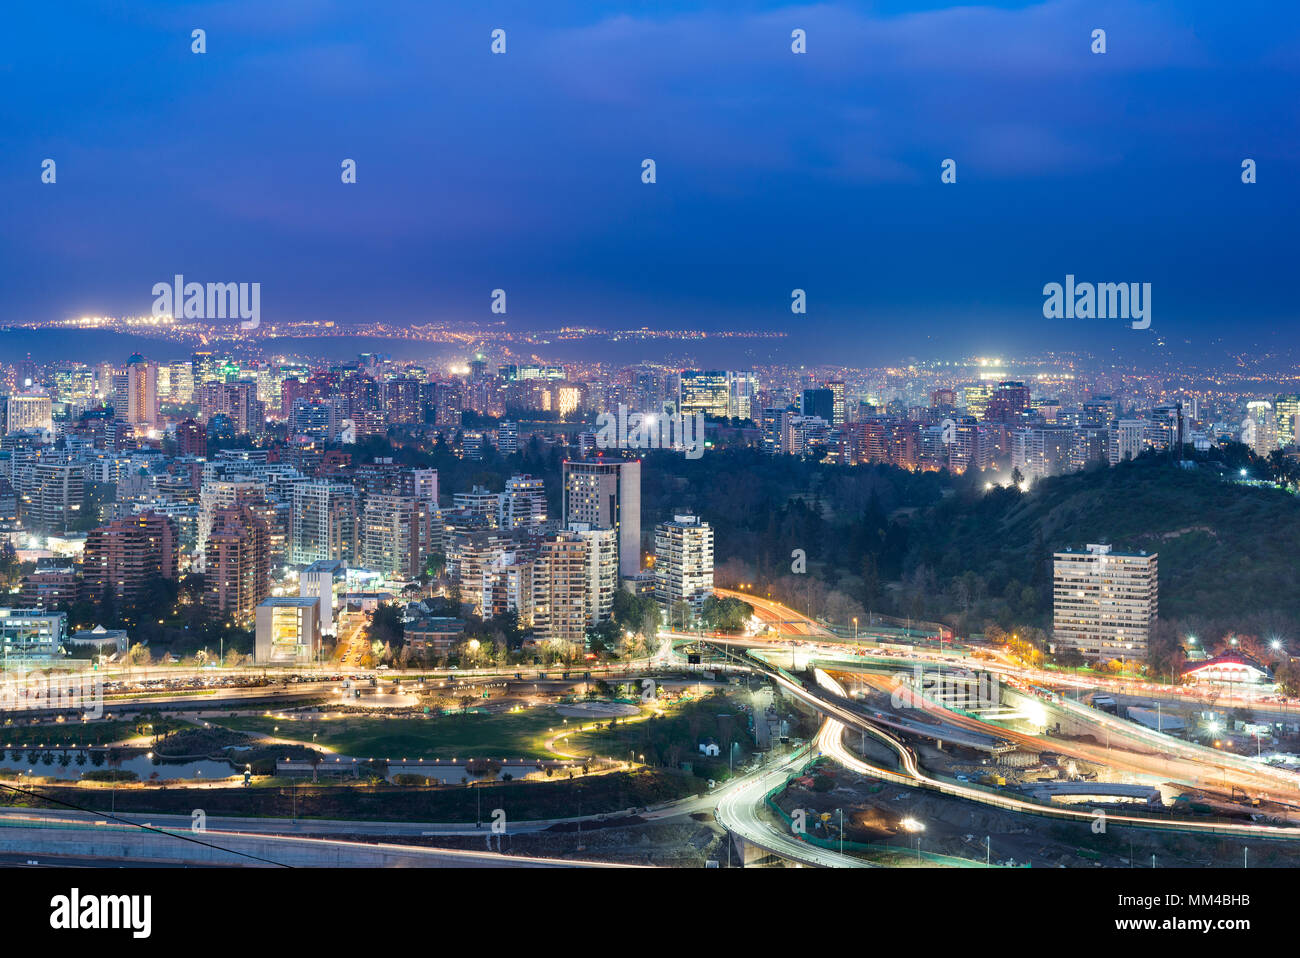 Residential buildings at the wealthy districts of  Vitacura and Las Condes, Santiago de Chile - Stock Image